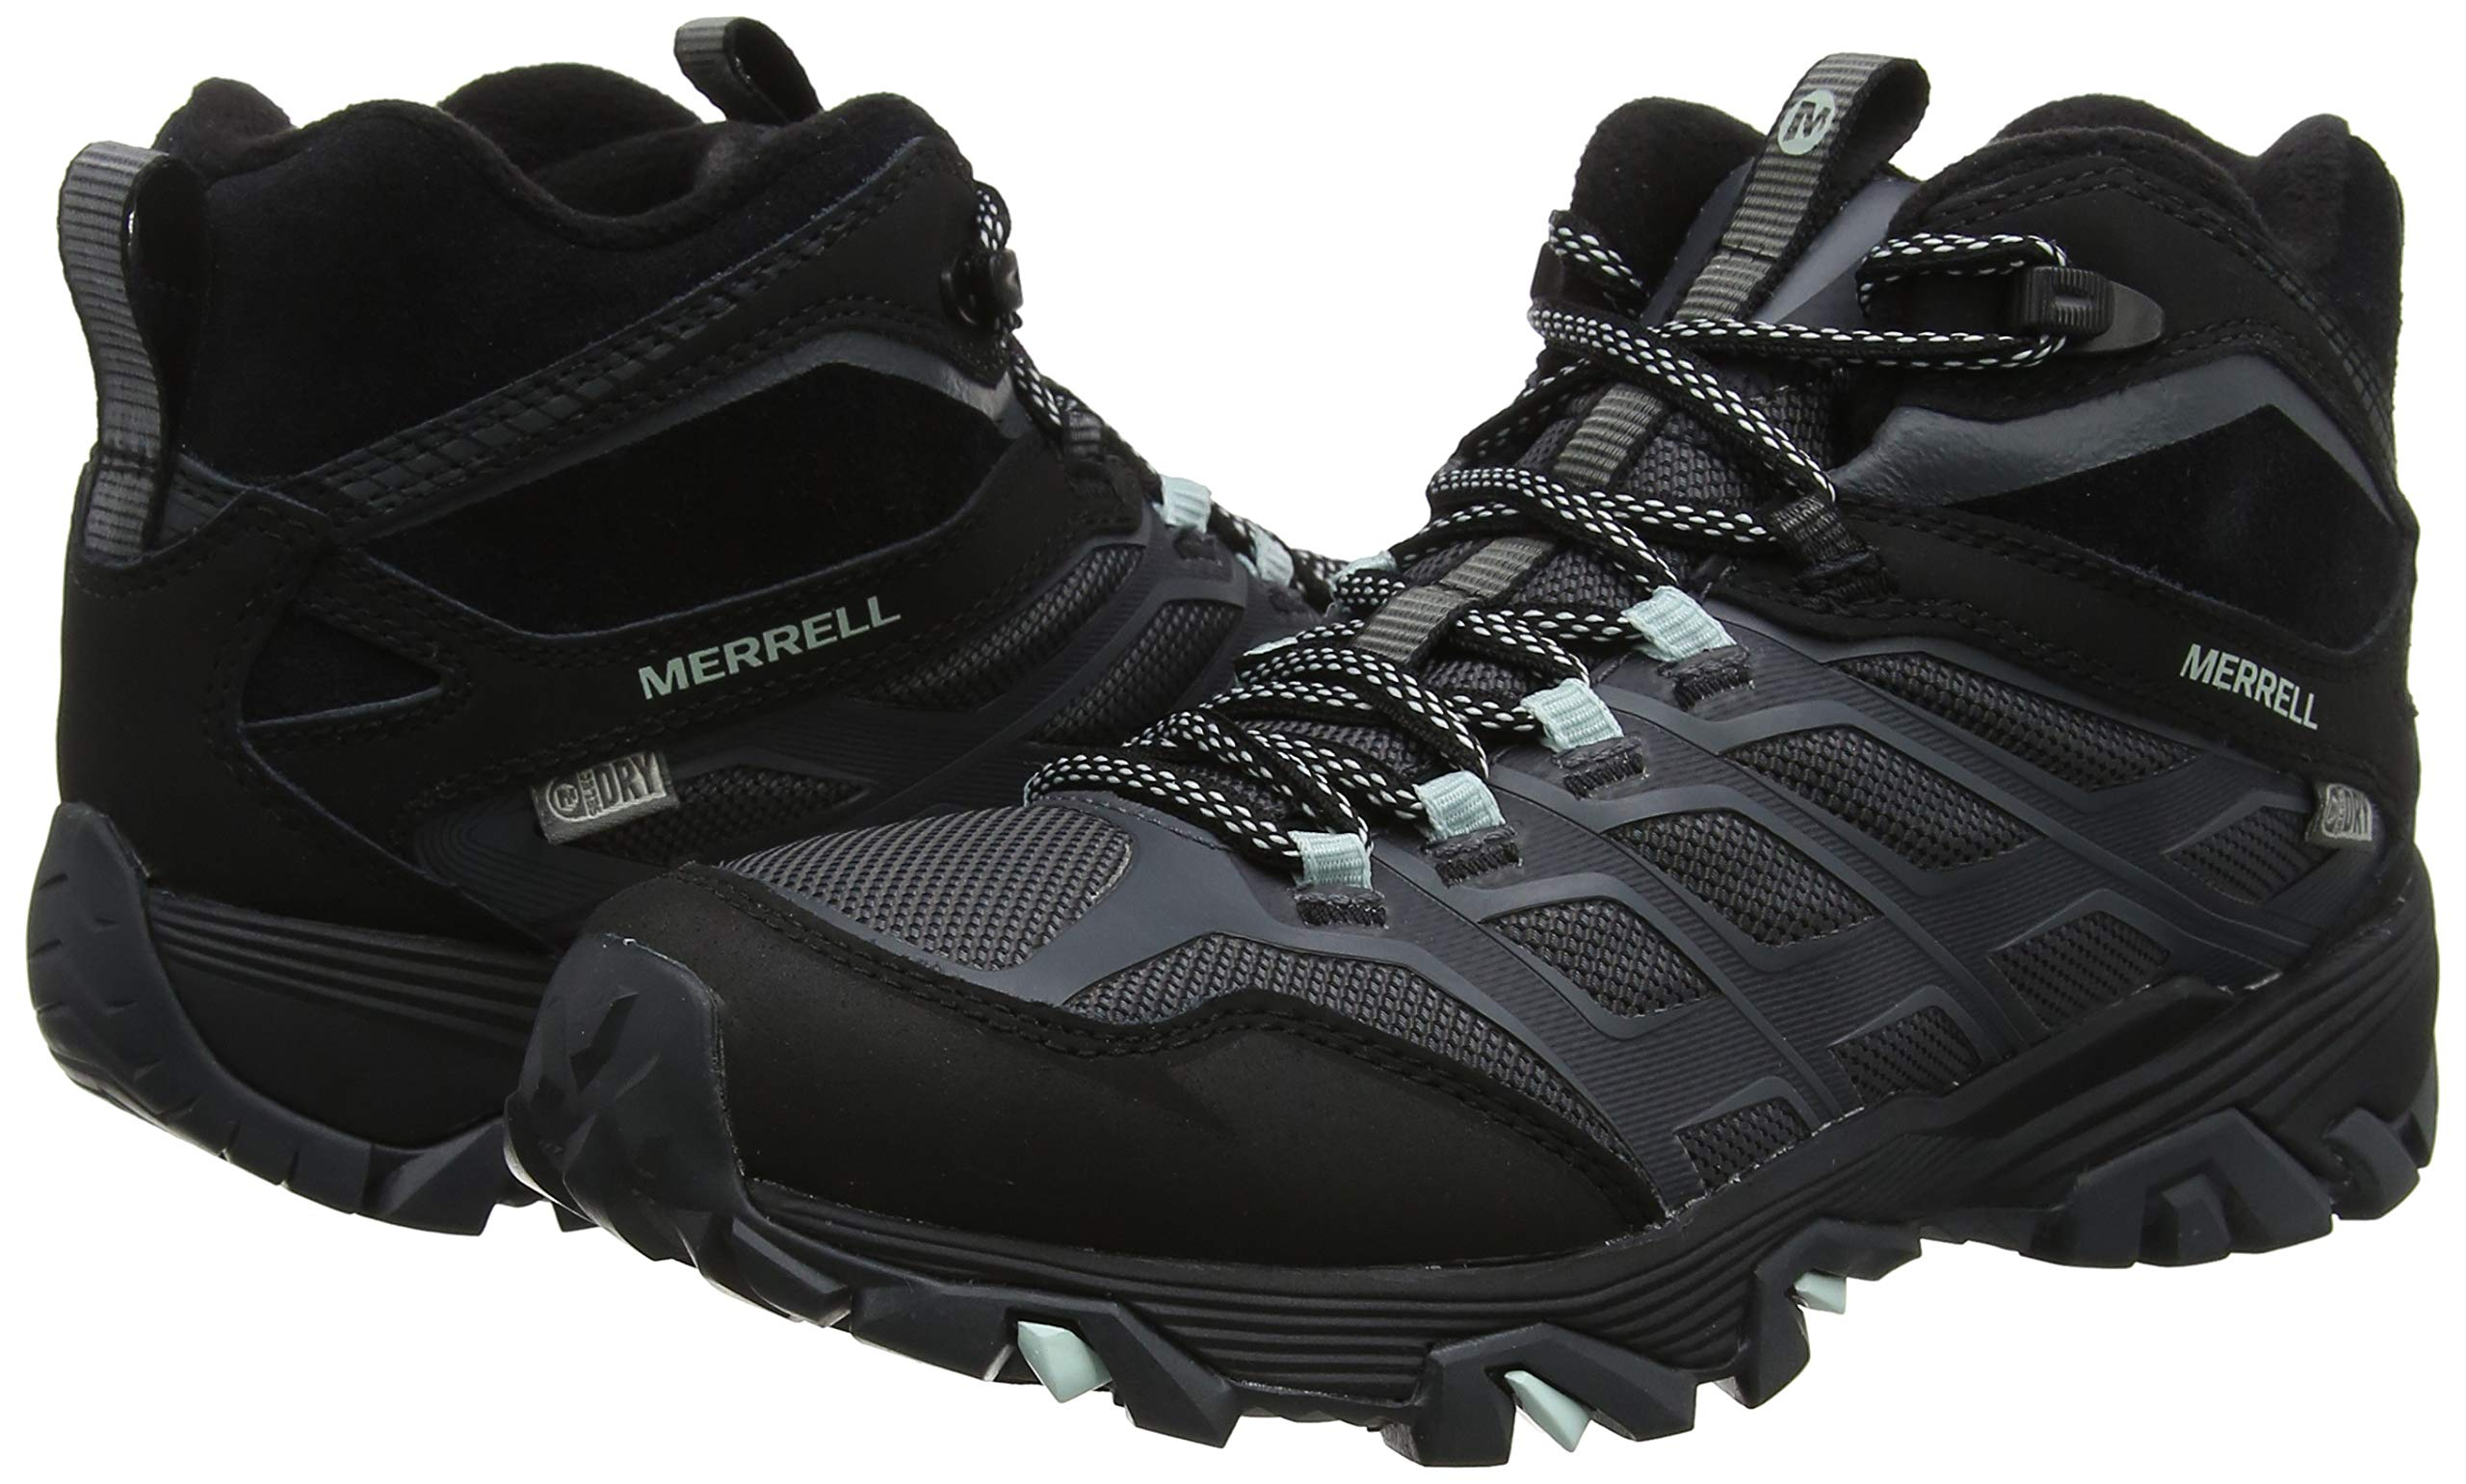 81Kvz%2BjG0qL - Merrell Women's Moab FST Ice+ Thermo High Rise Hiking Boots